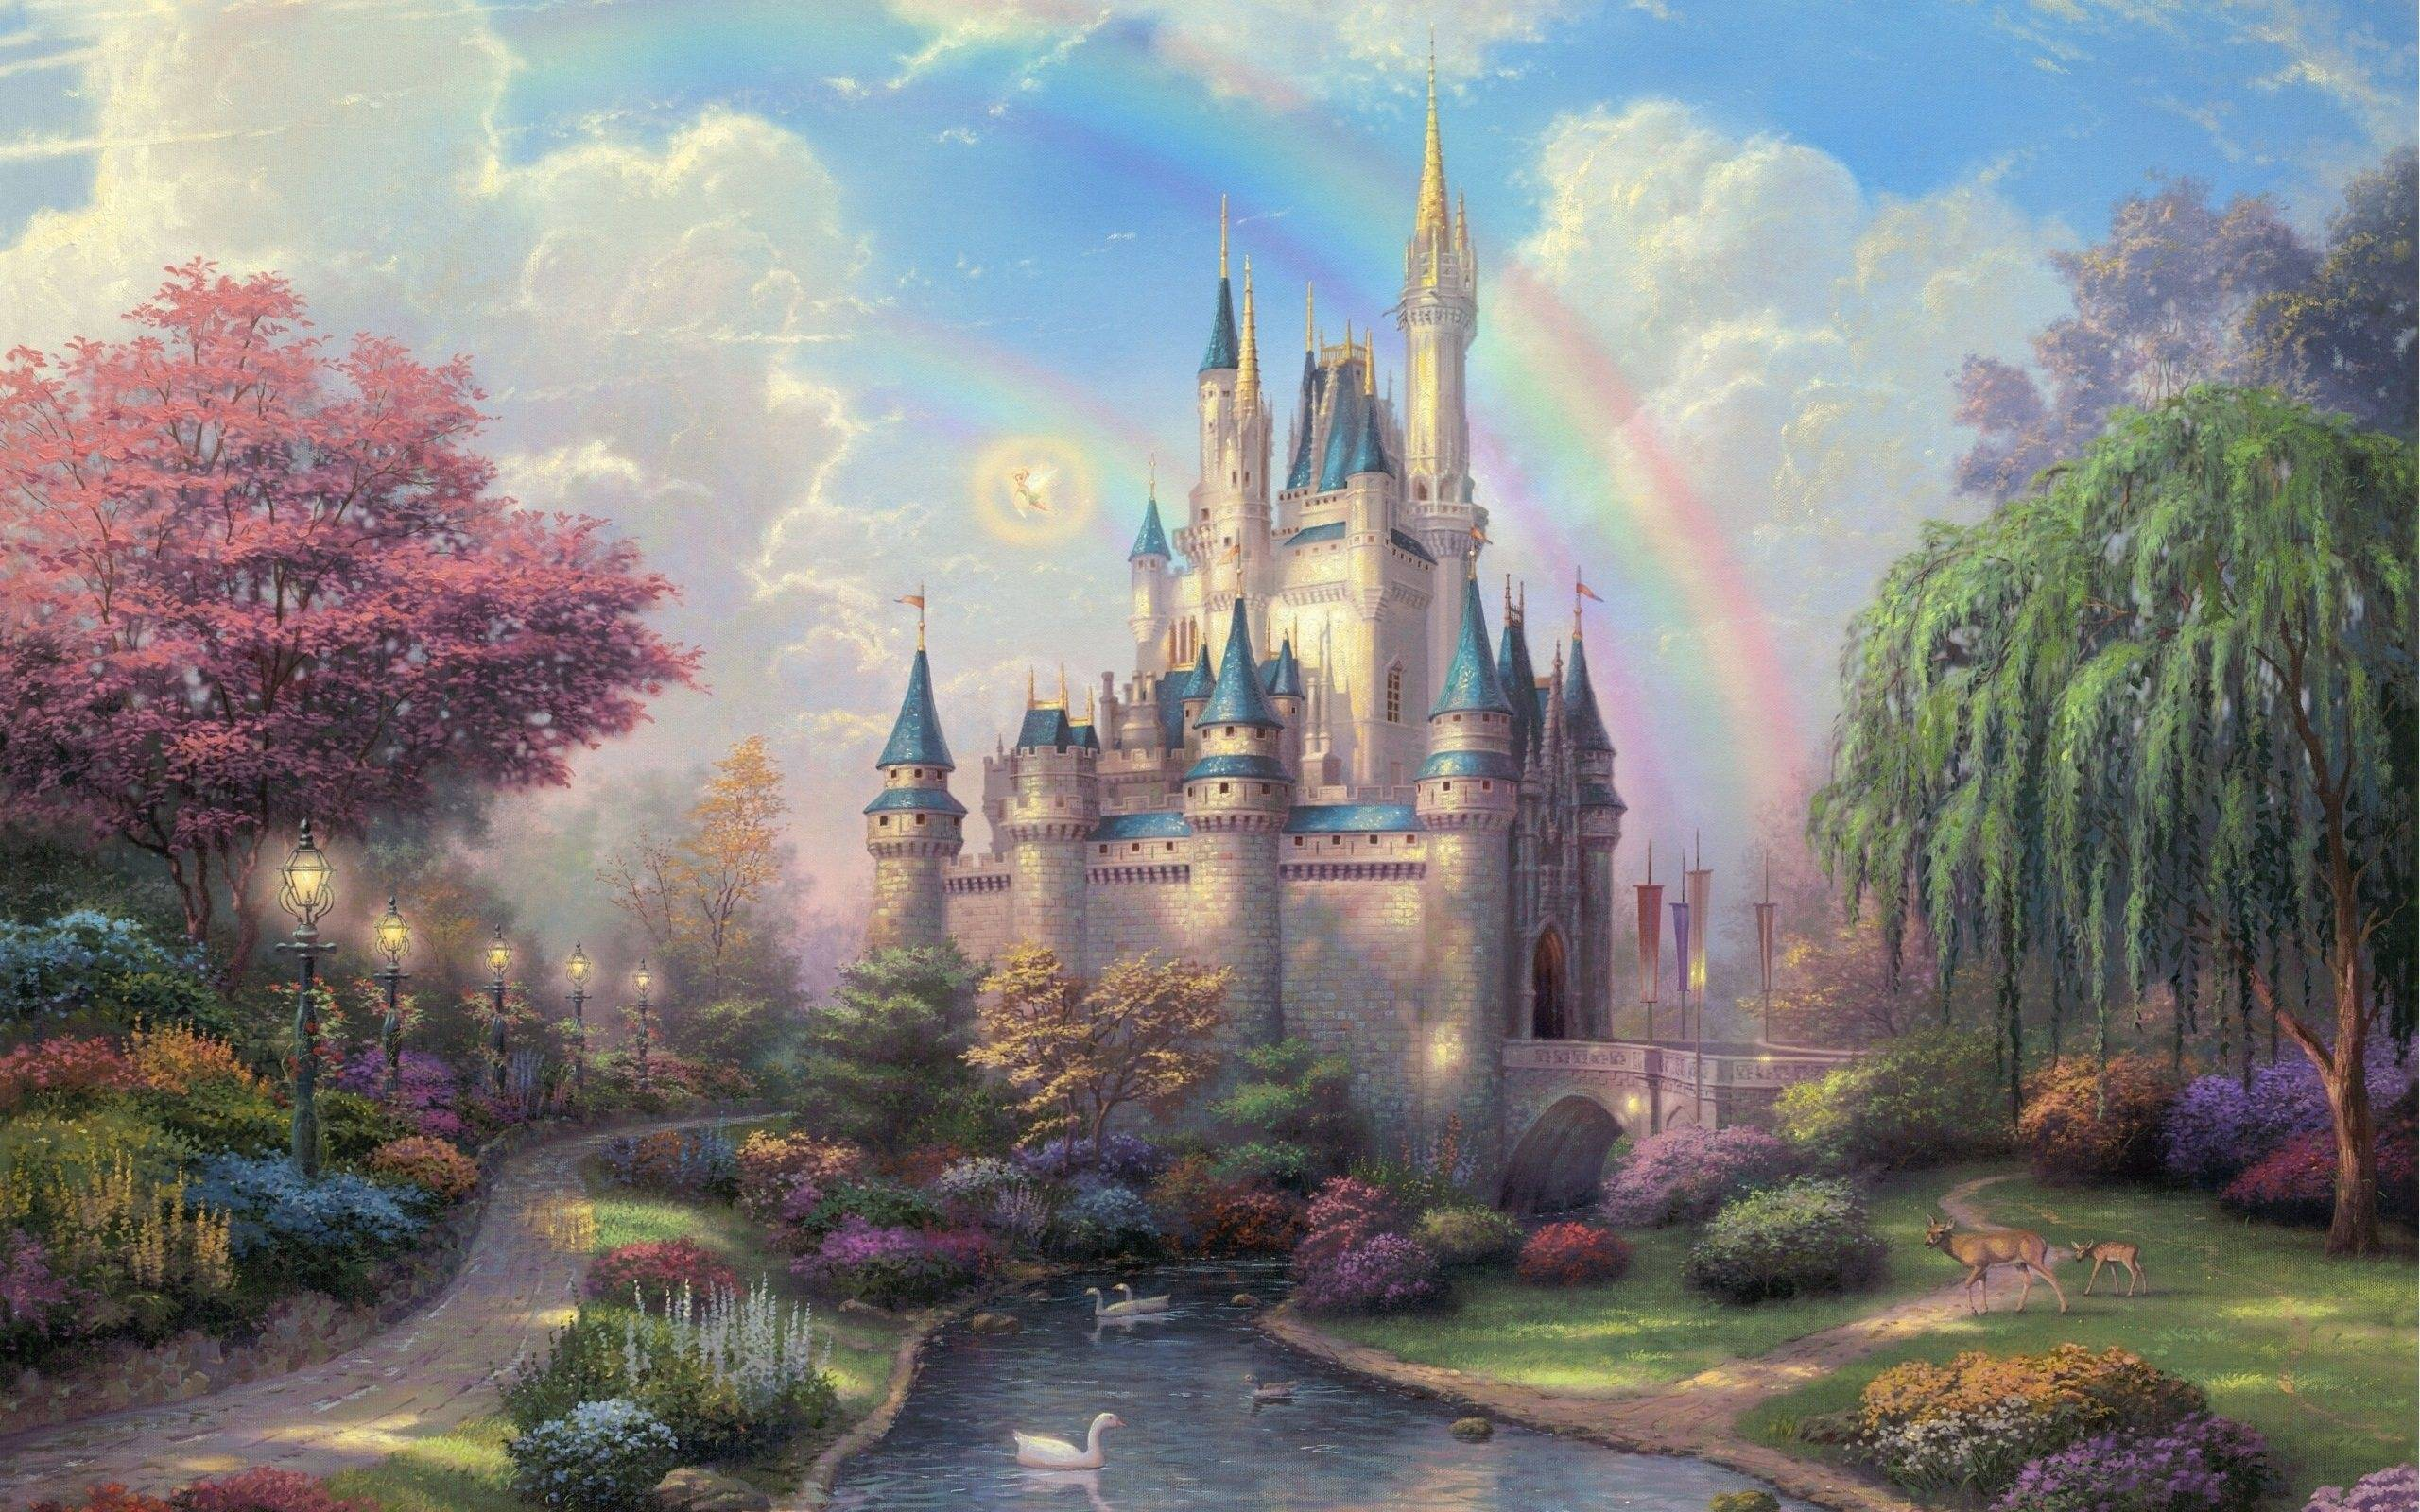 Disney Castle Backgrounds - Wallpaper Cave